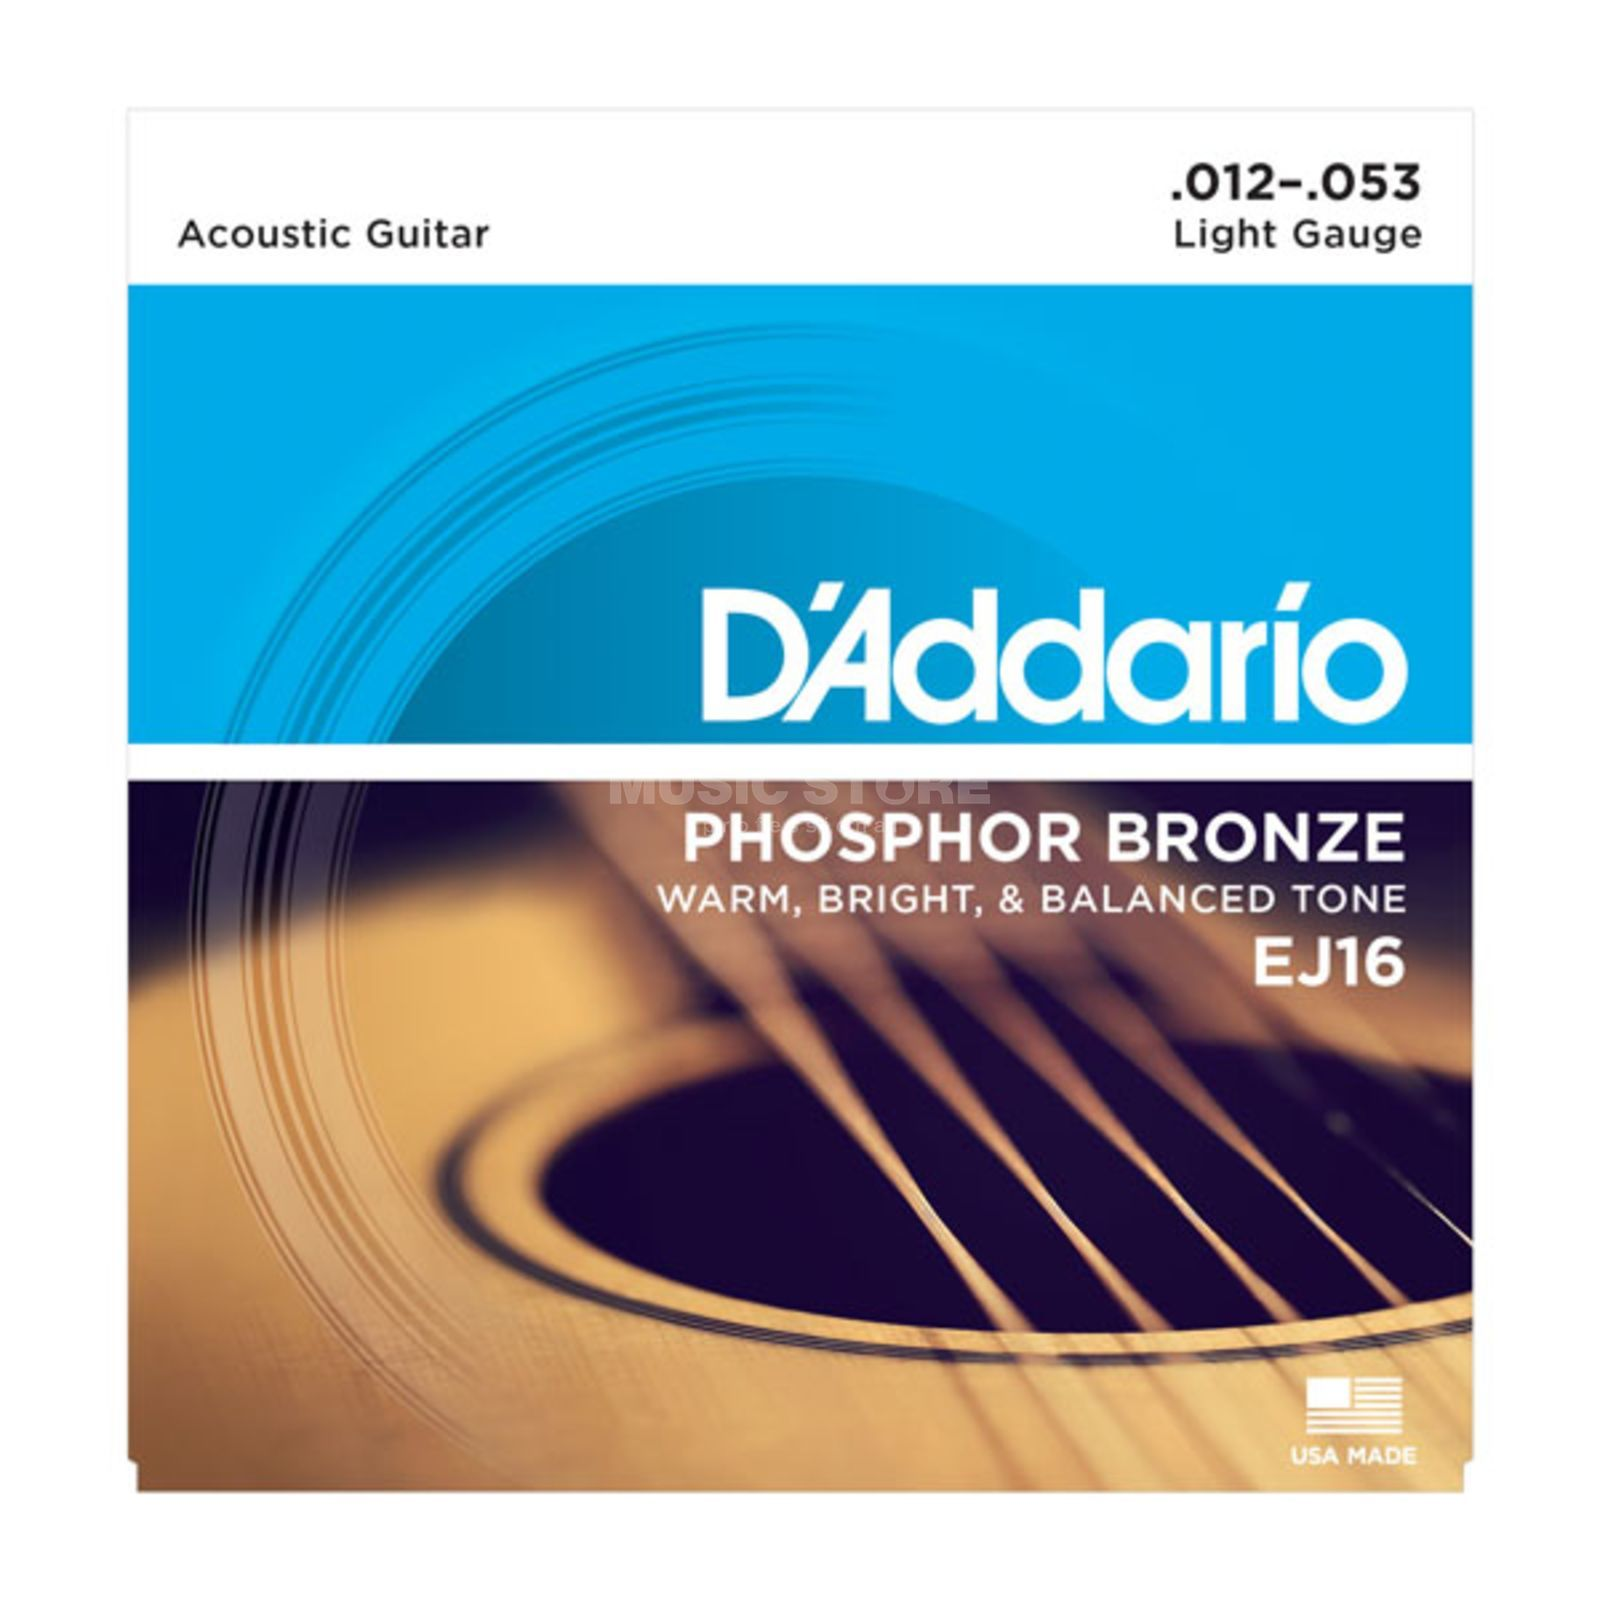 D'Addario A-Guit.Strings EJ16 12-53 Phosphor Bronze Product Image